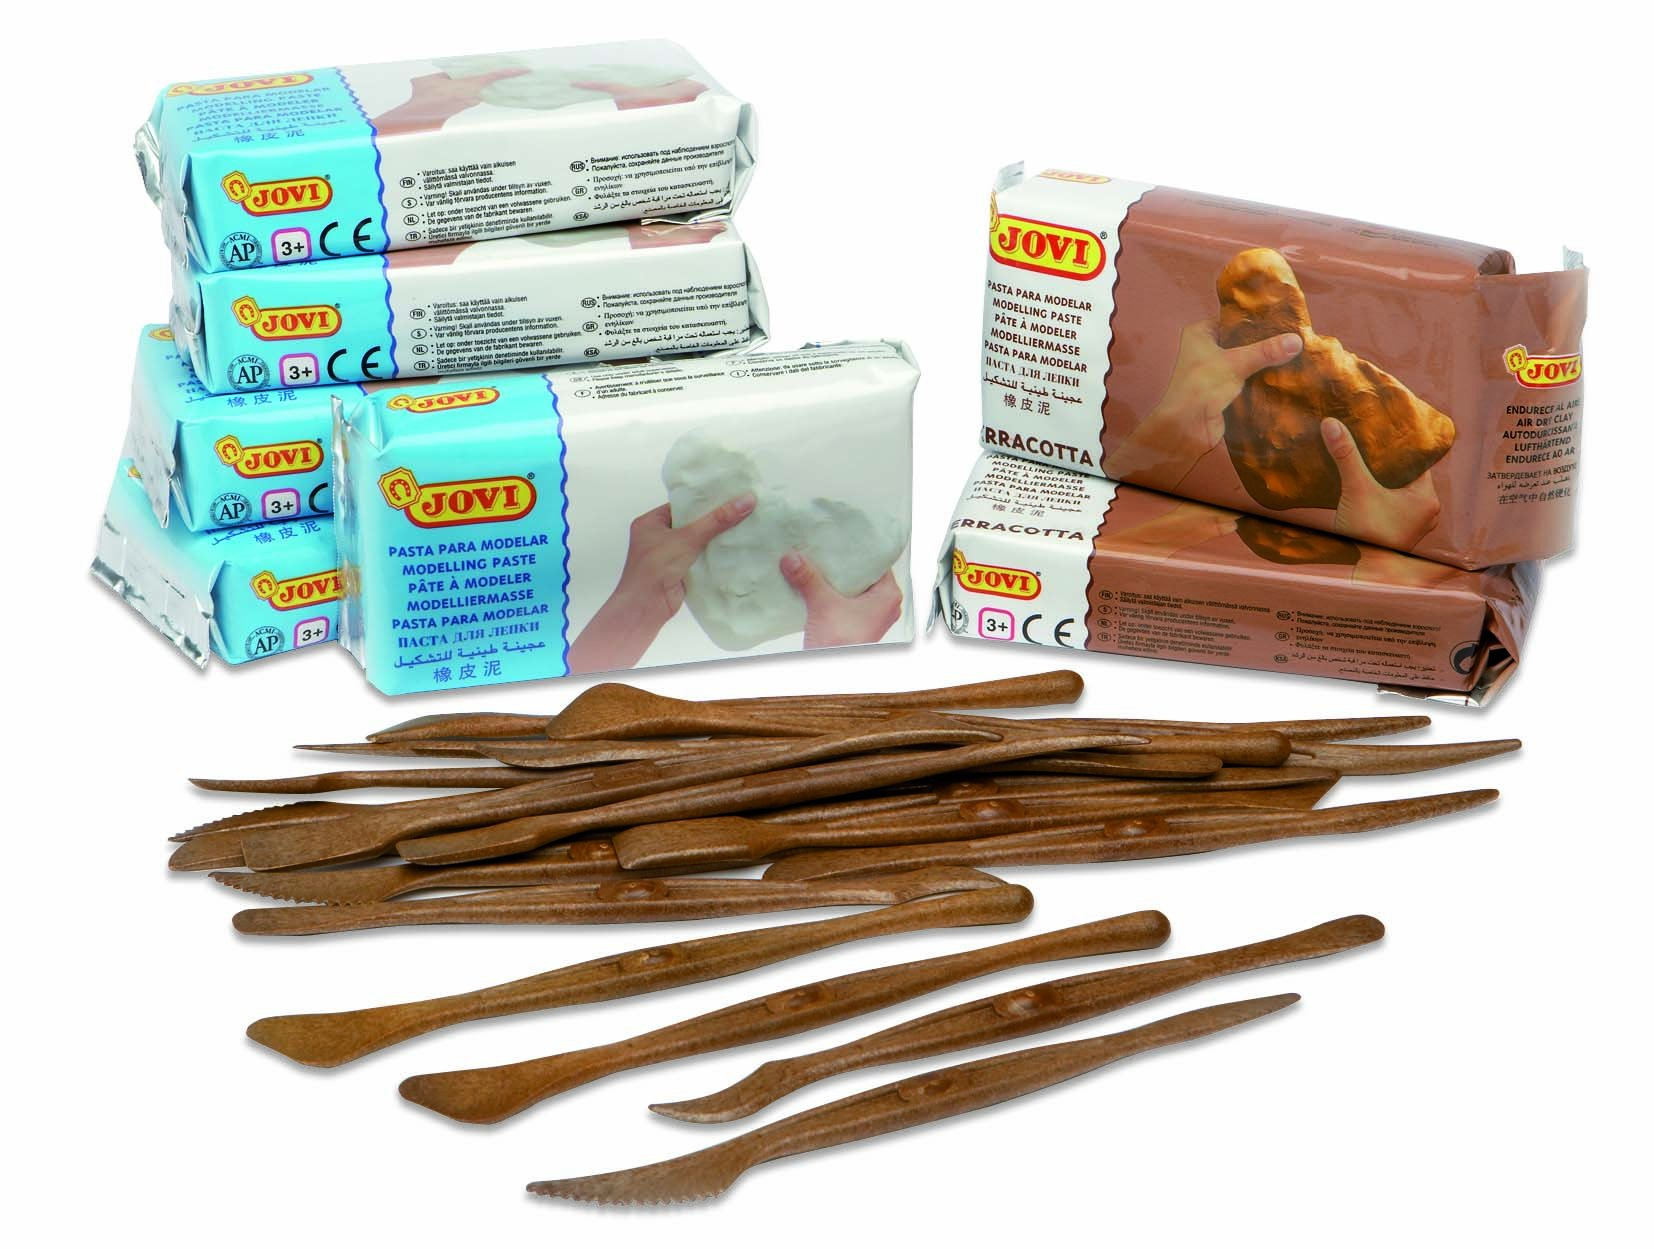 Jovi 80 Air Dry Modeling Clay Classpack; 5 White and 2 Terracotta 1.1Lb Bricks with 20 Sculpting Tools Non-Staining, 7.7 lb., Assorted